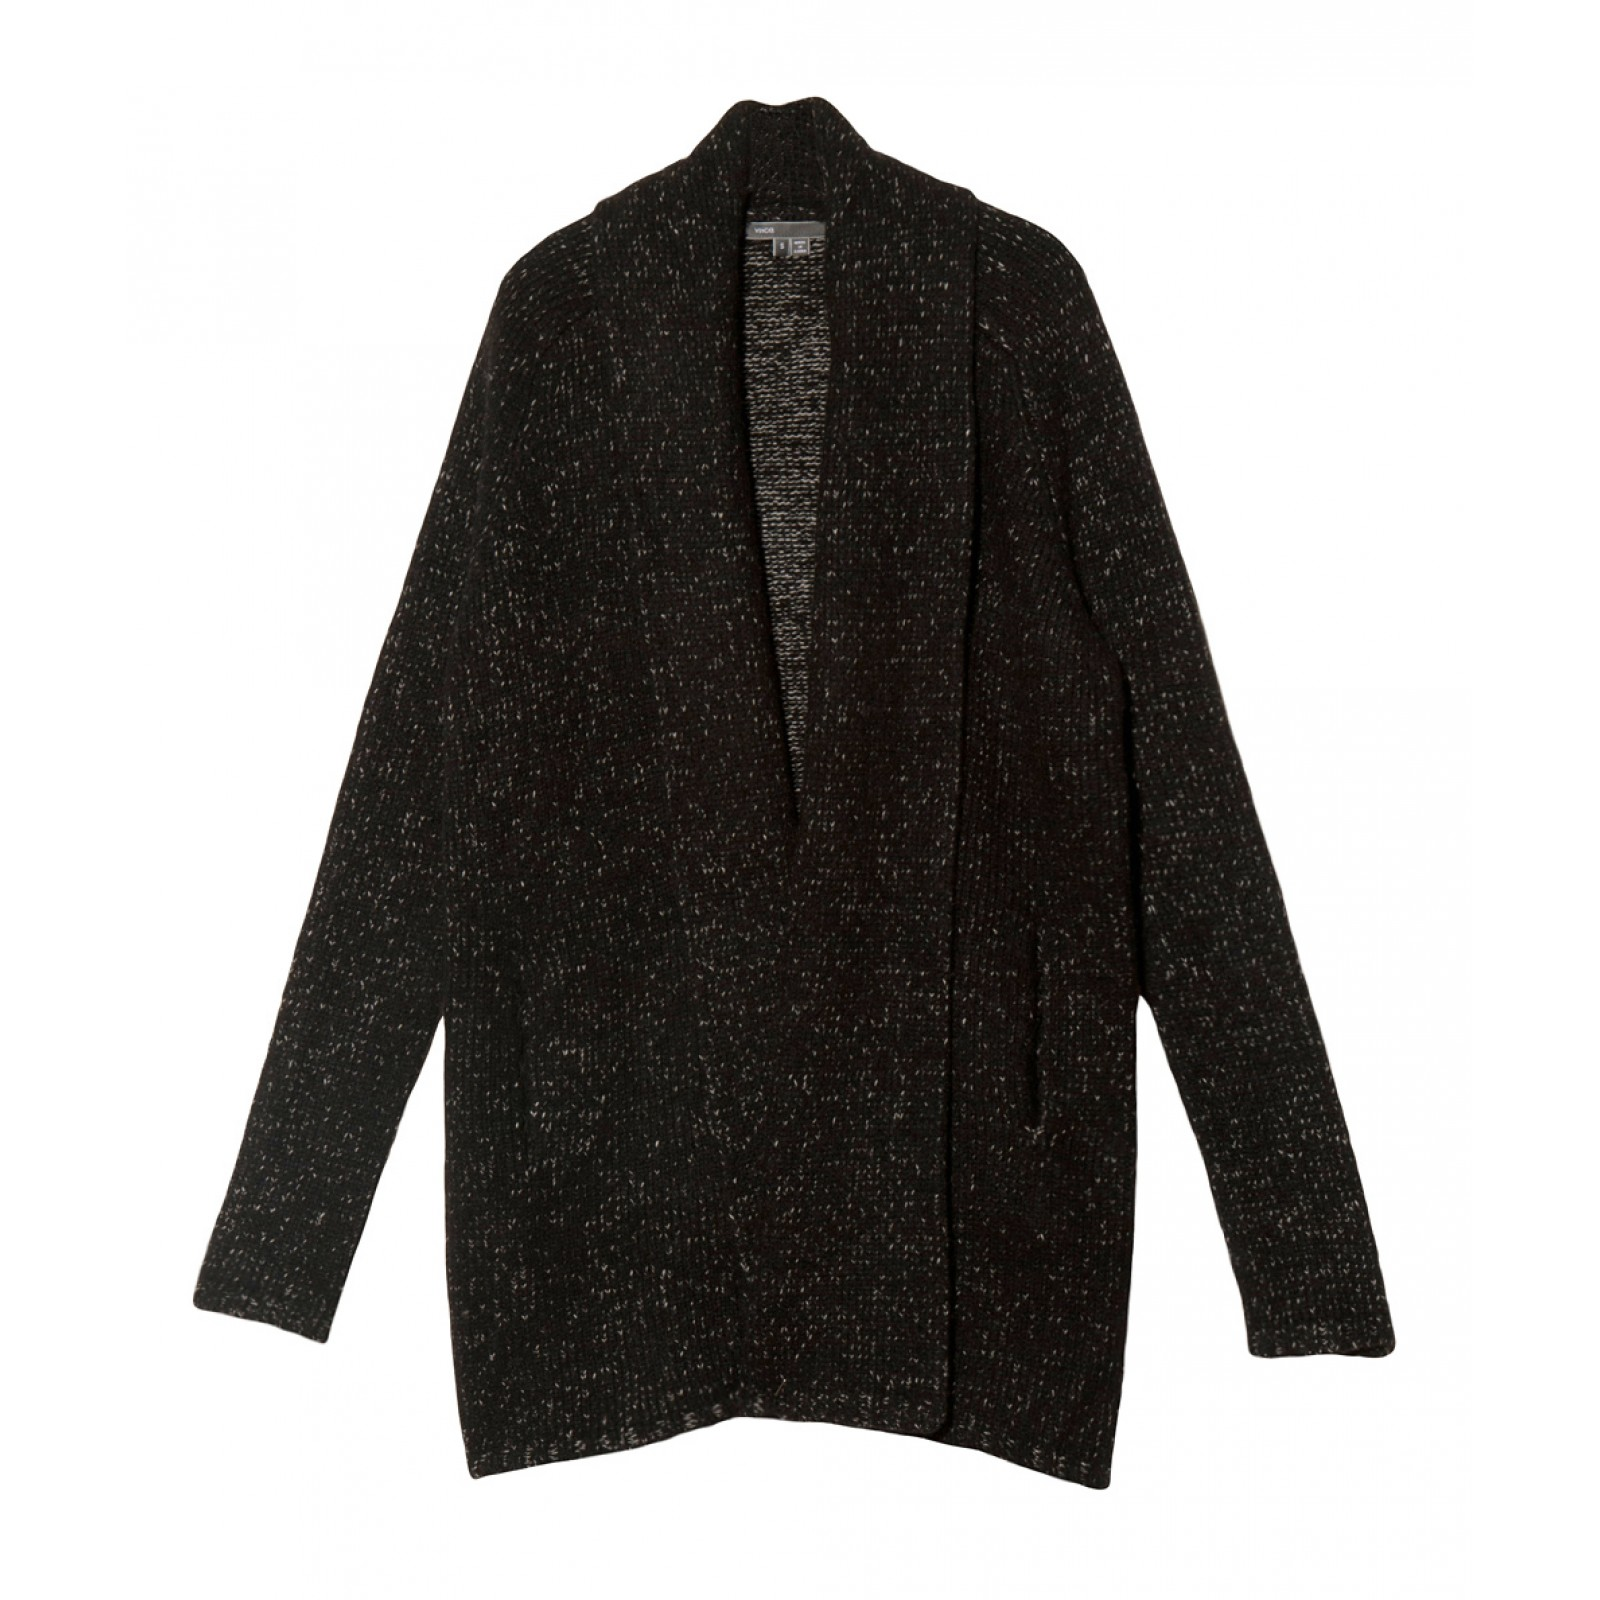 Black Sweater Coat Cardigan - JacketIn